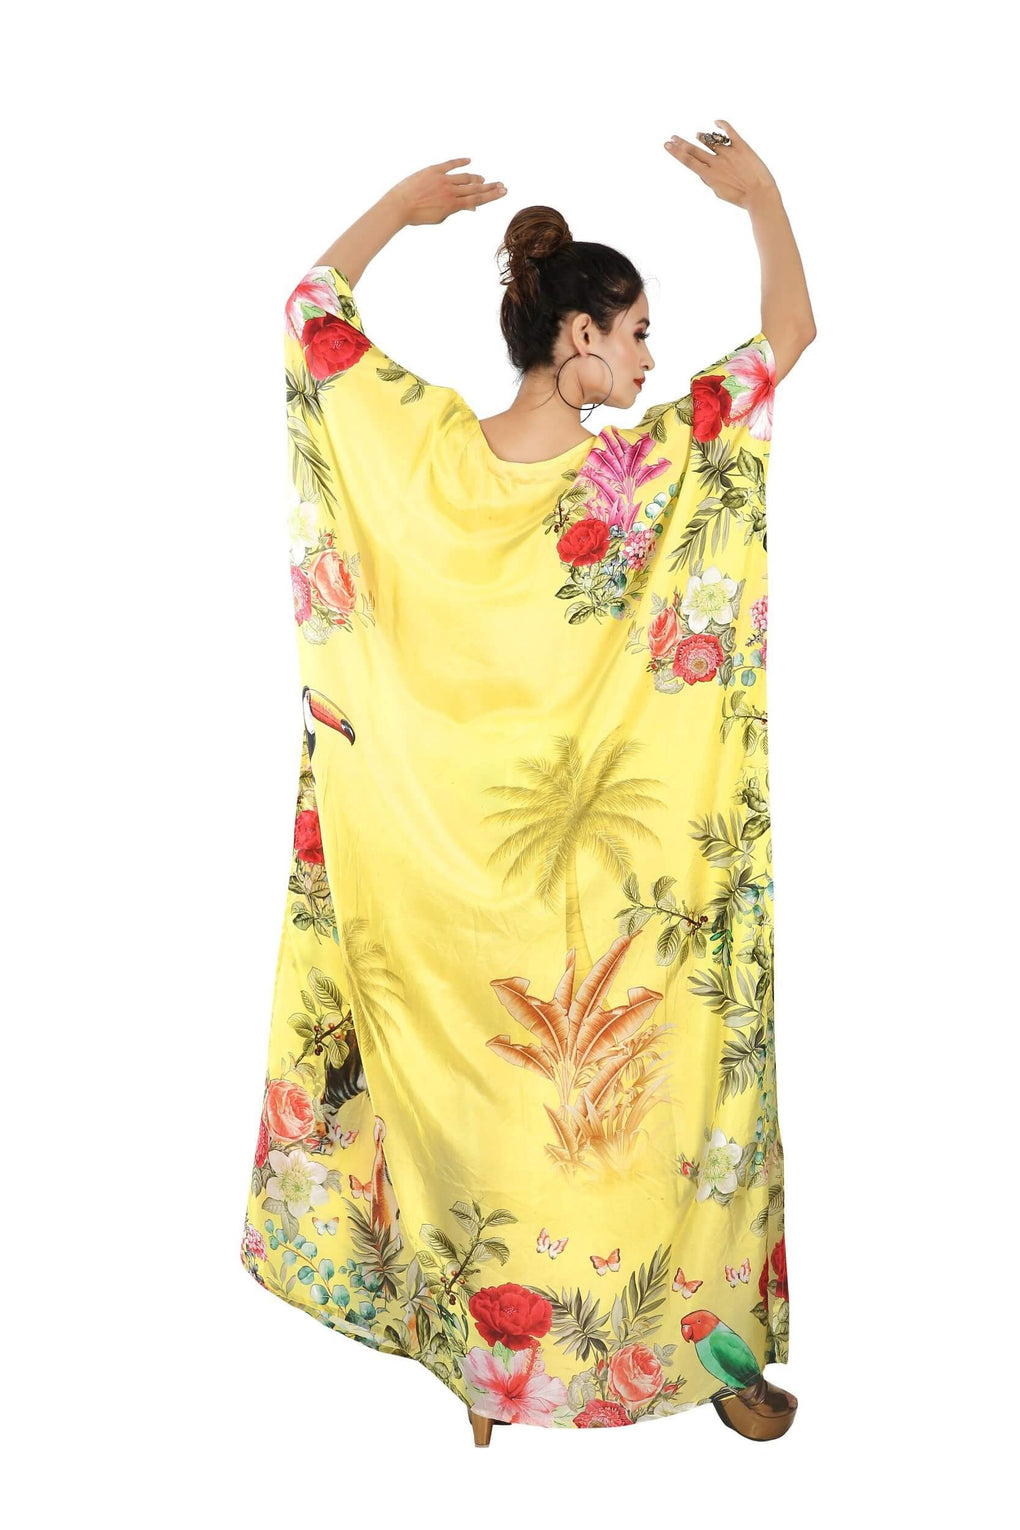 Boat neck Yellow color floral and Animal Print kaftan long silk dress